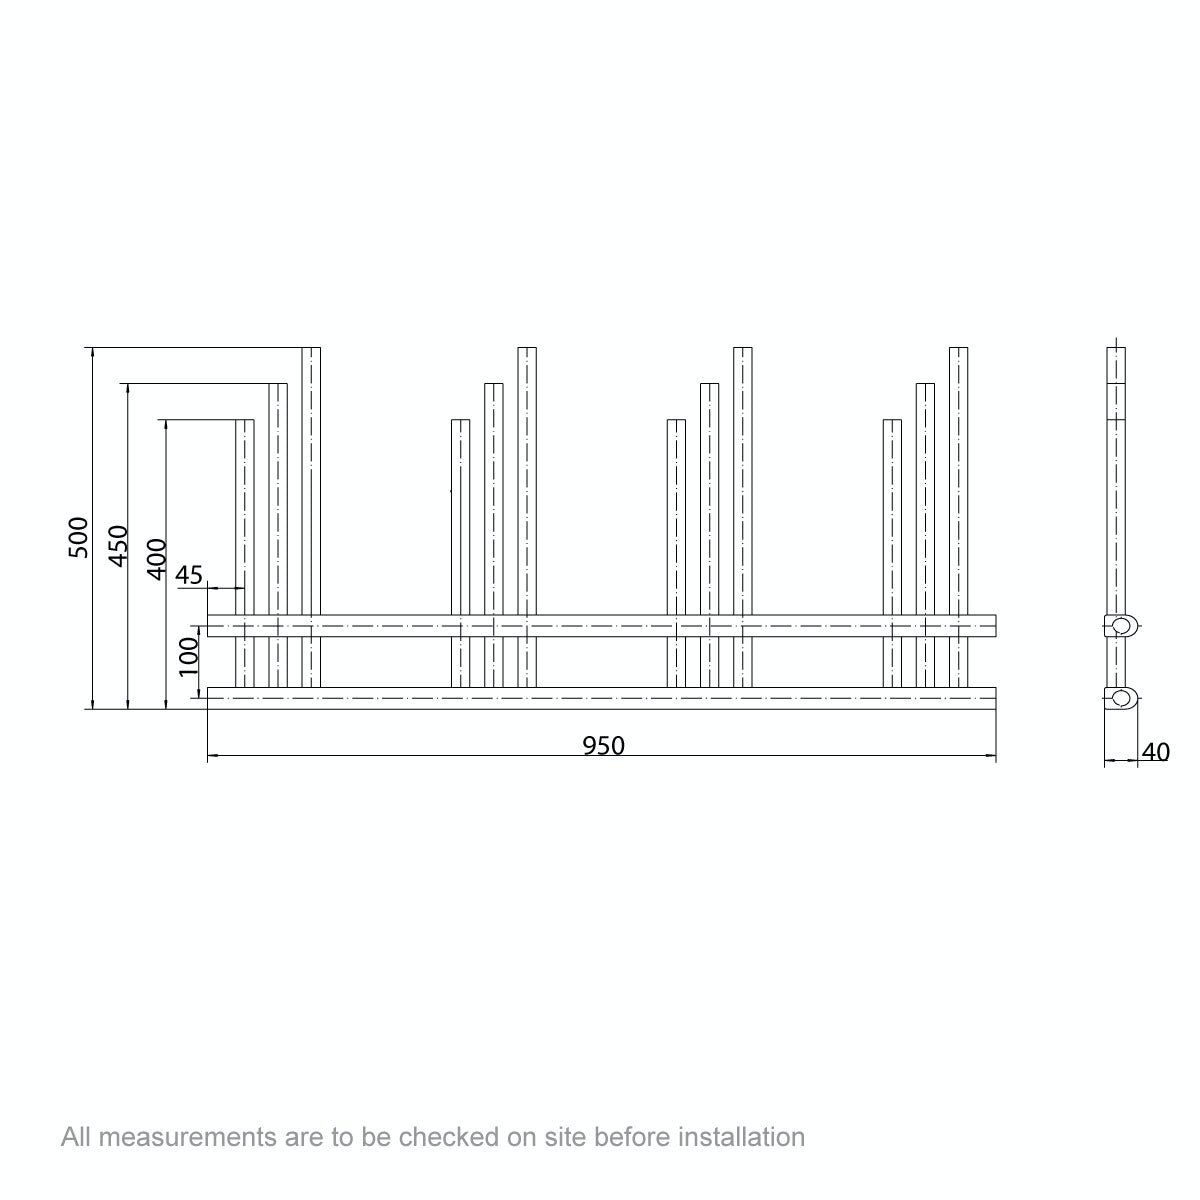 Dimensions for Mode Harrison heated towel rail 950 x 500